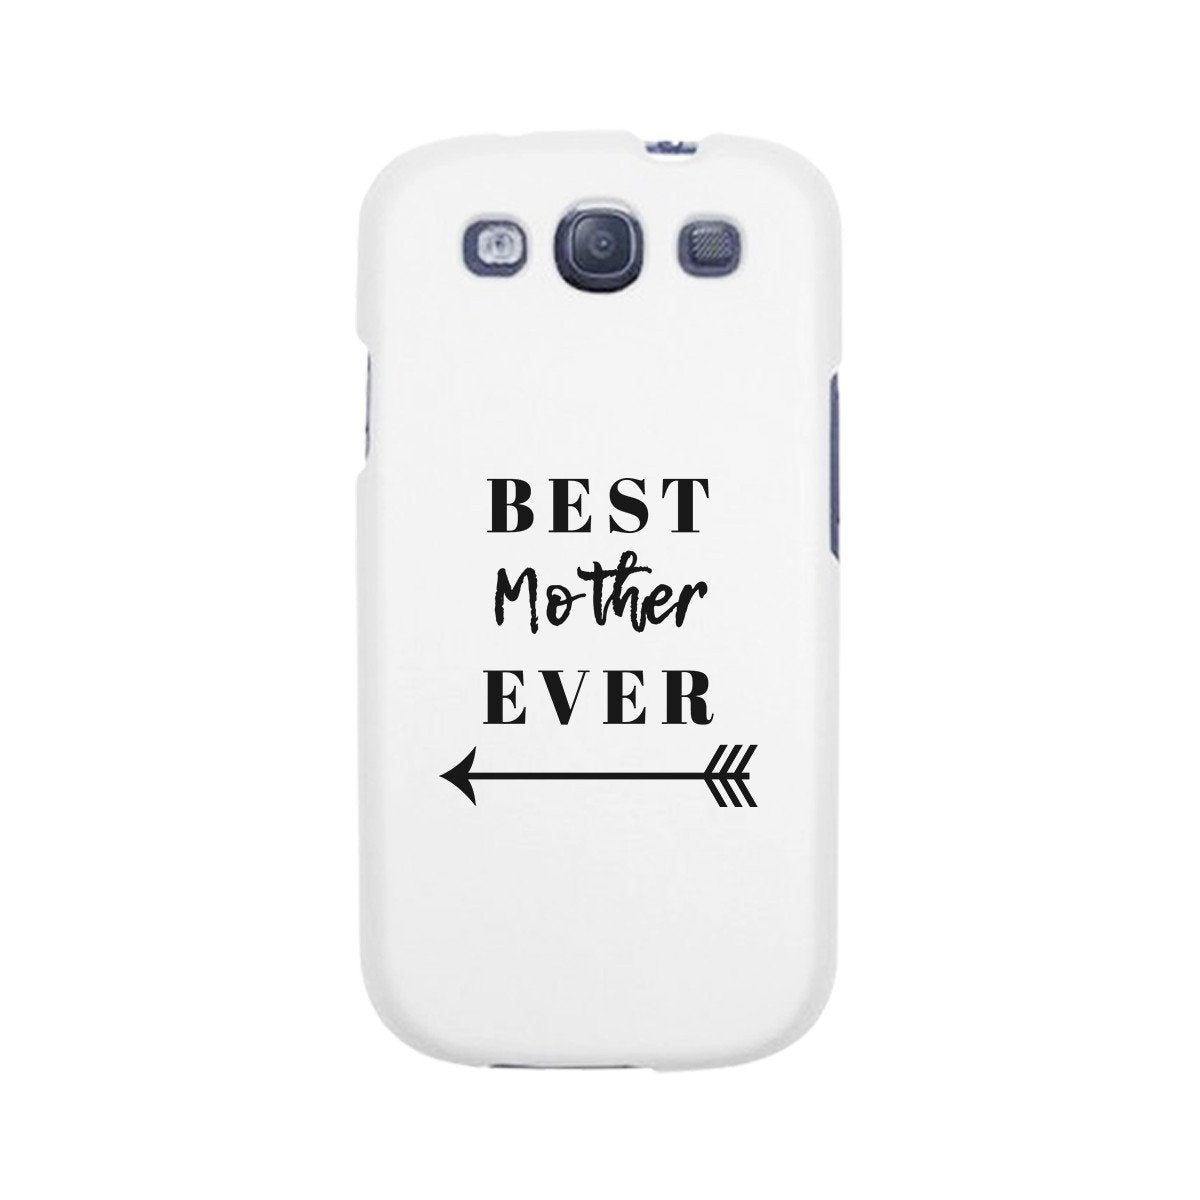 Best Mother Ever White Phone Case